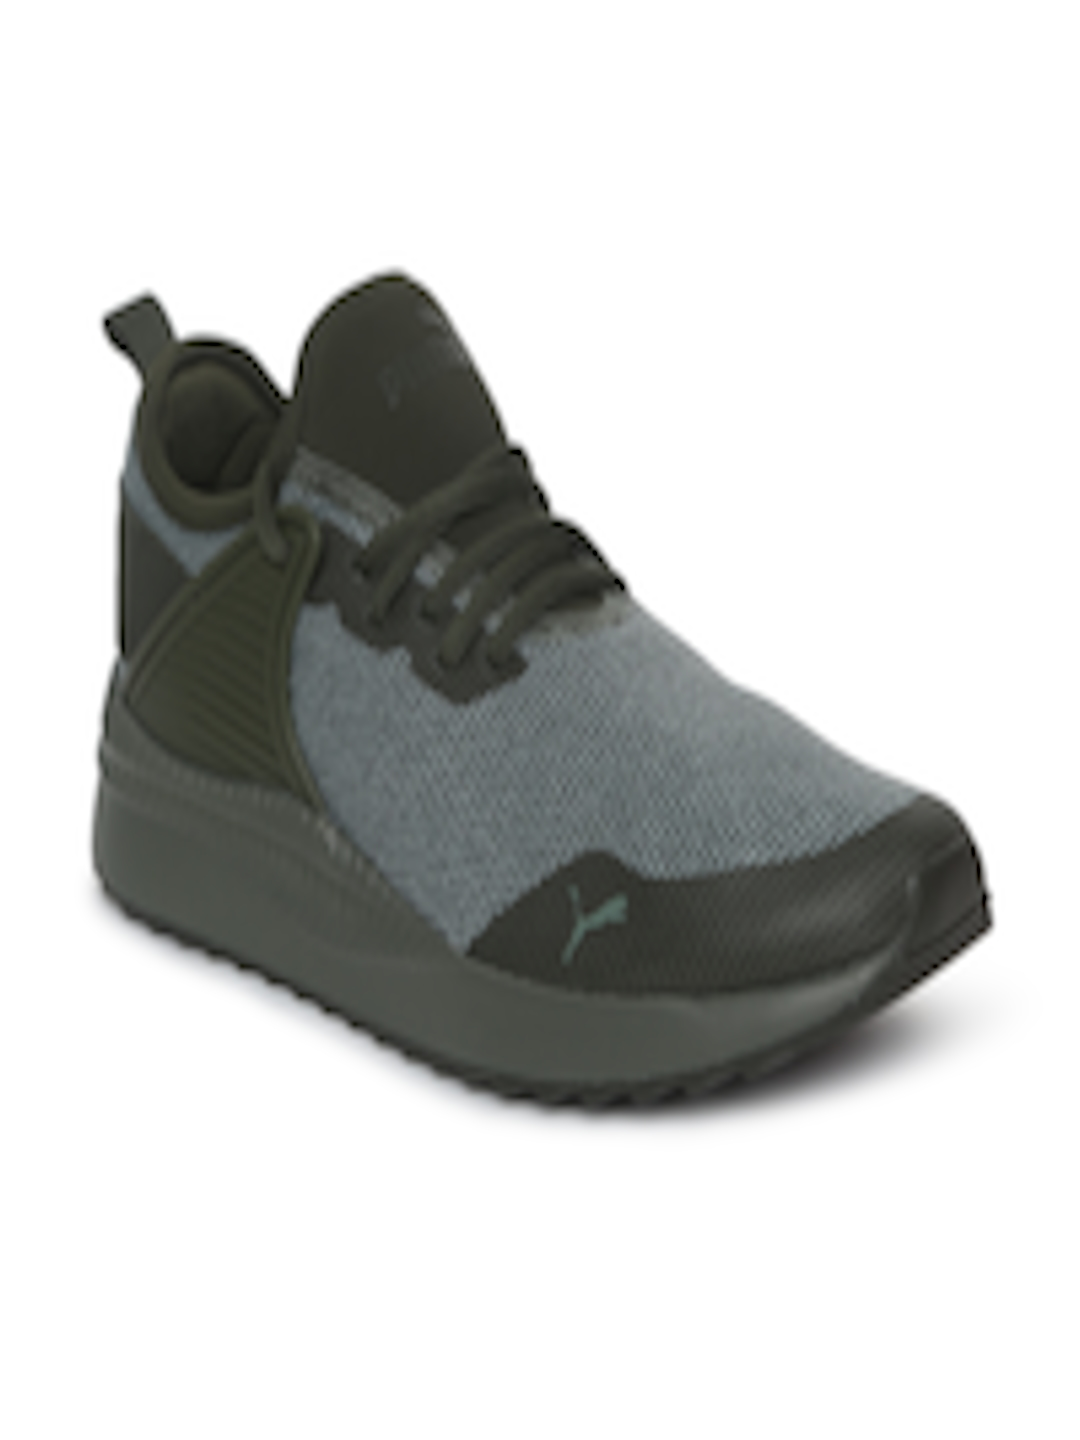 Buy Puma Kids Grey   Olive Green Colourblocked Pacer Next Cage Knitted  Sneakers - Casual Shoes for Unisex 7141701  9bdd9cd45